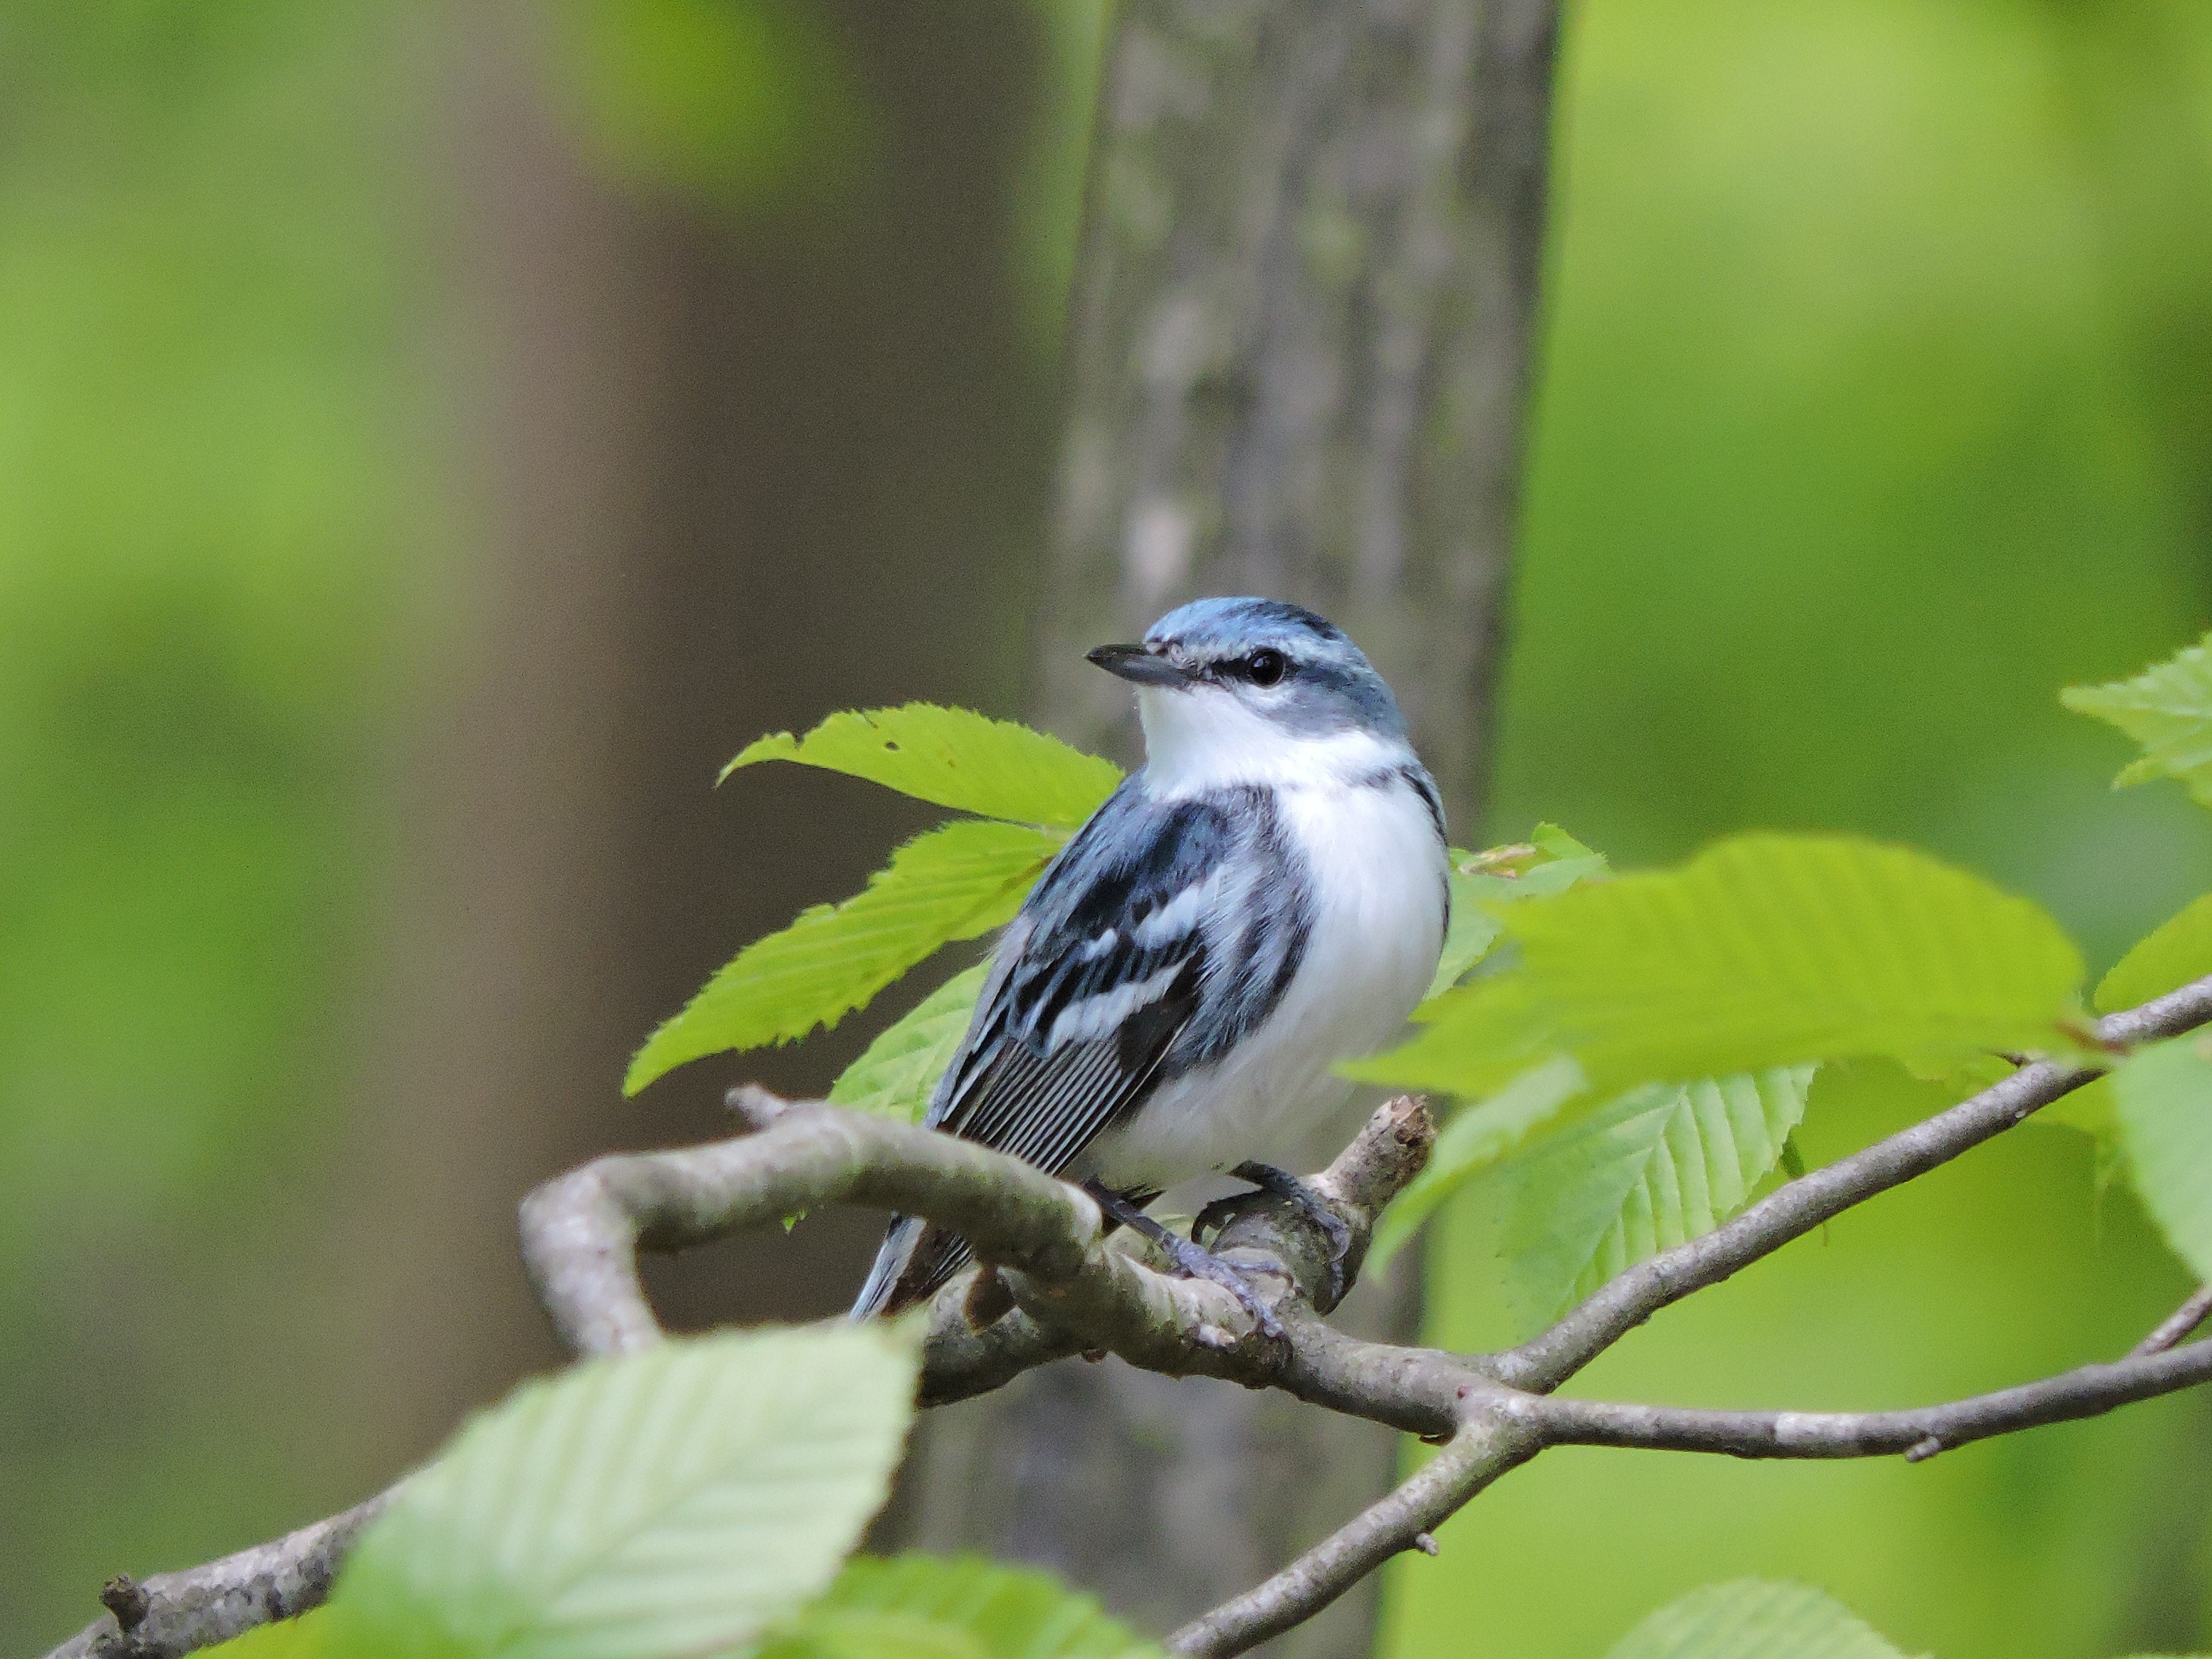 The cerulean warbler nests and raises its young in the treetops above the Appalachian Mountains. Photo courtesy of DJ McNeil